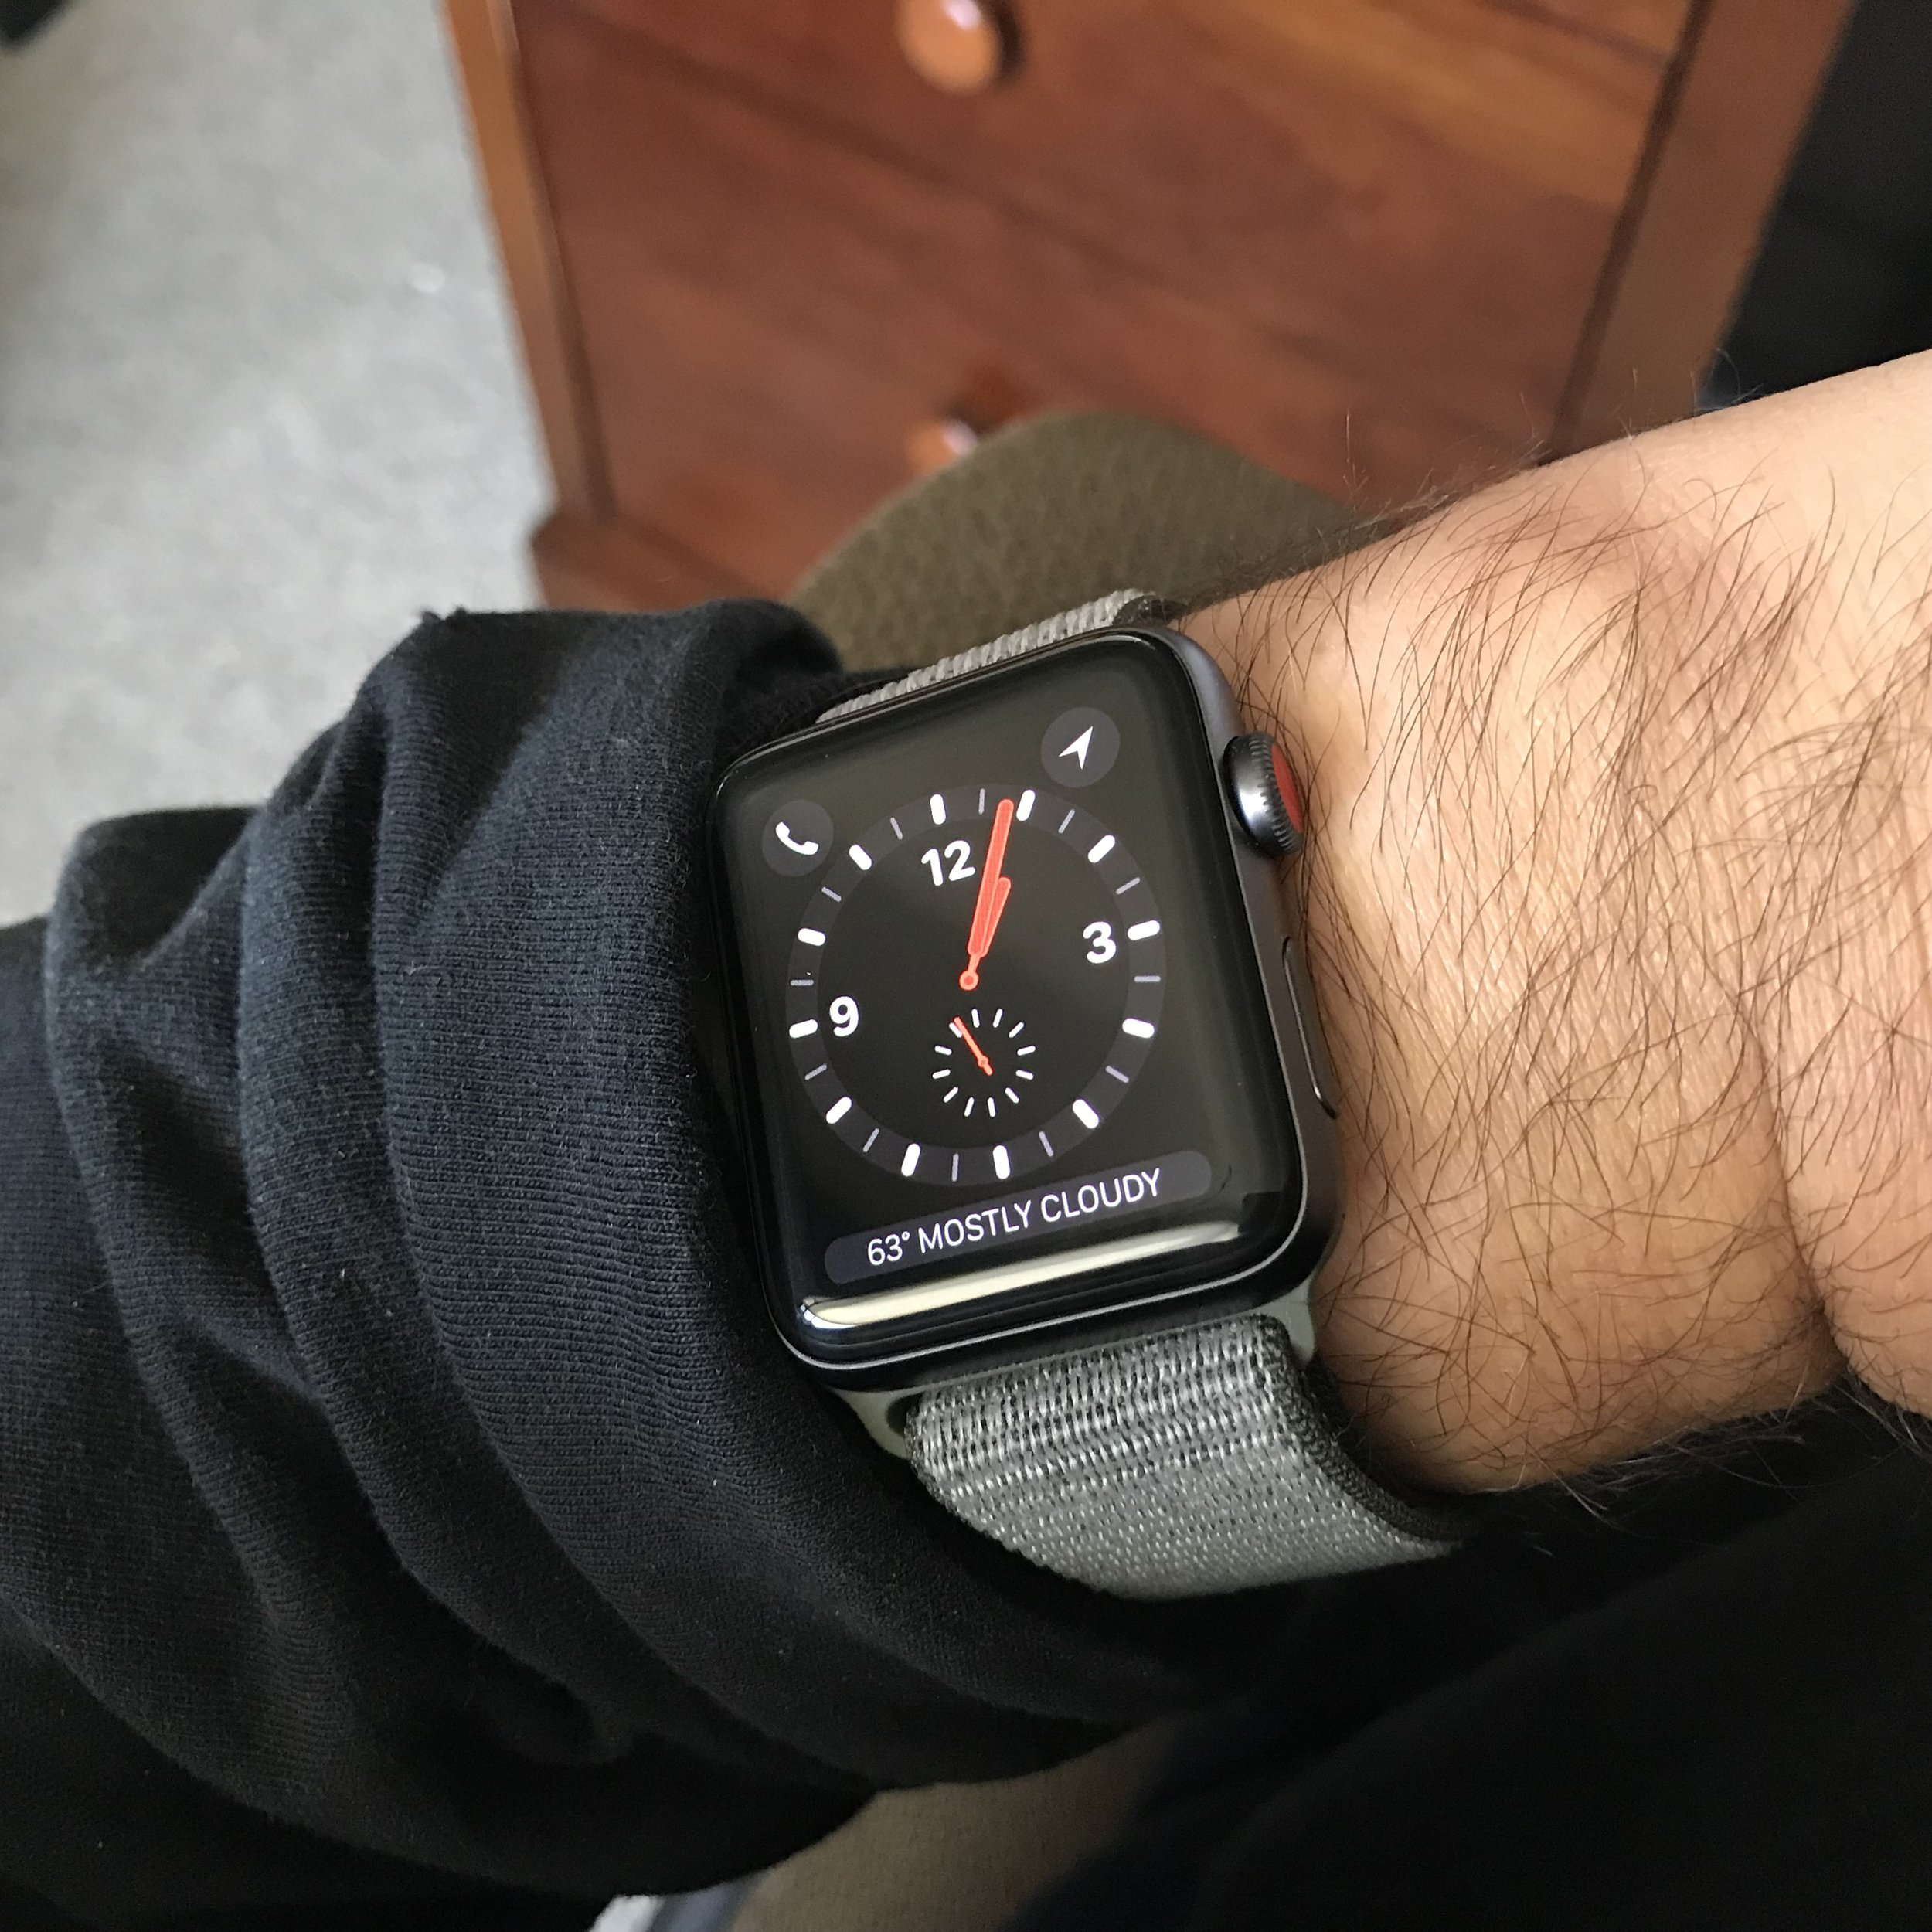 The Apple Watch Series 3 with Cellular, showing the Explorer watch face and the Dark Olive Sport Loop Band